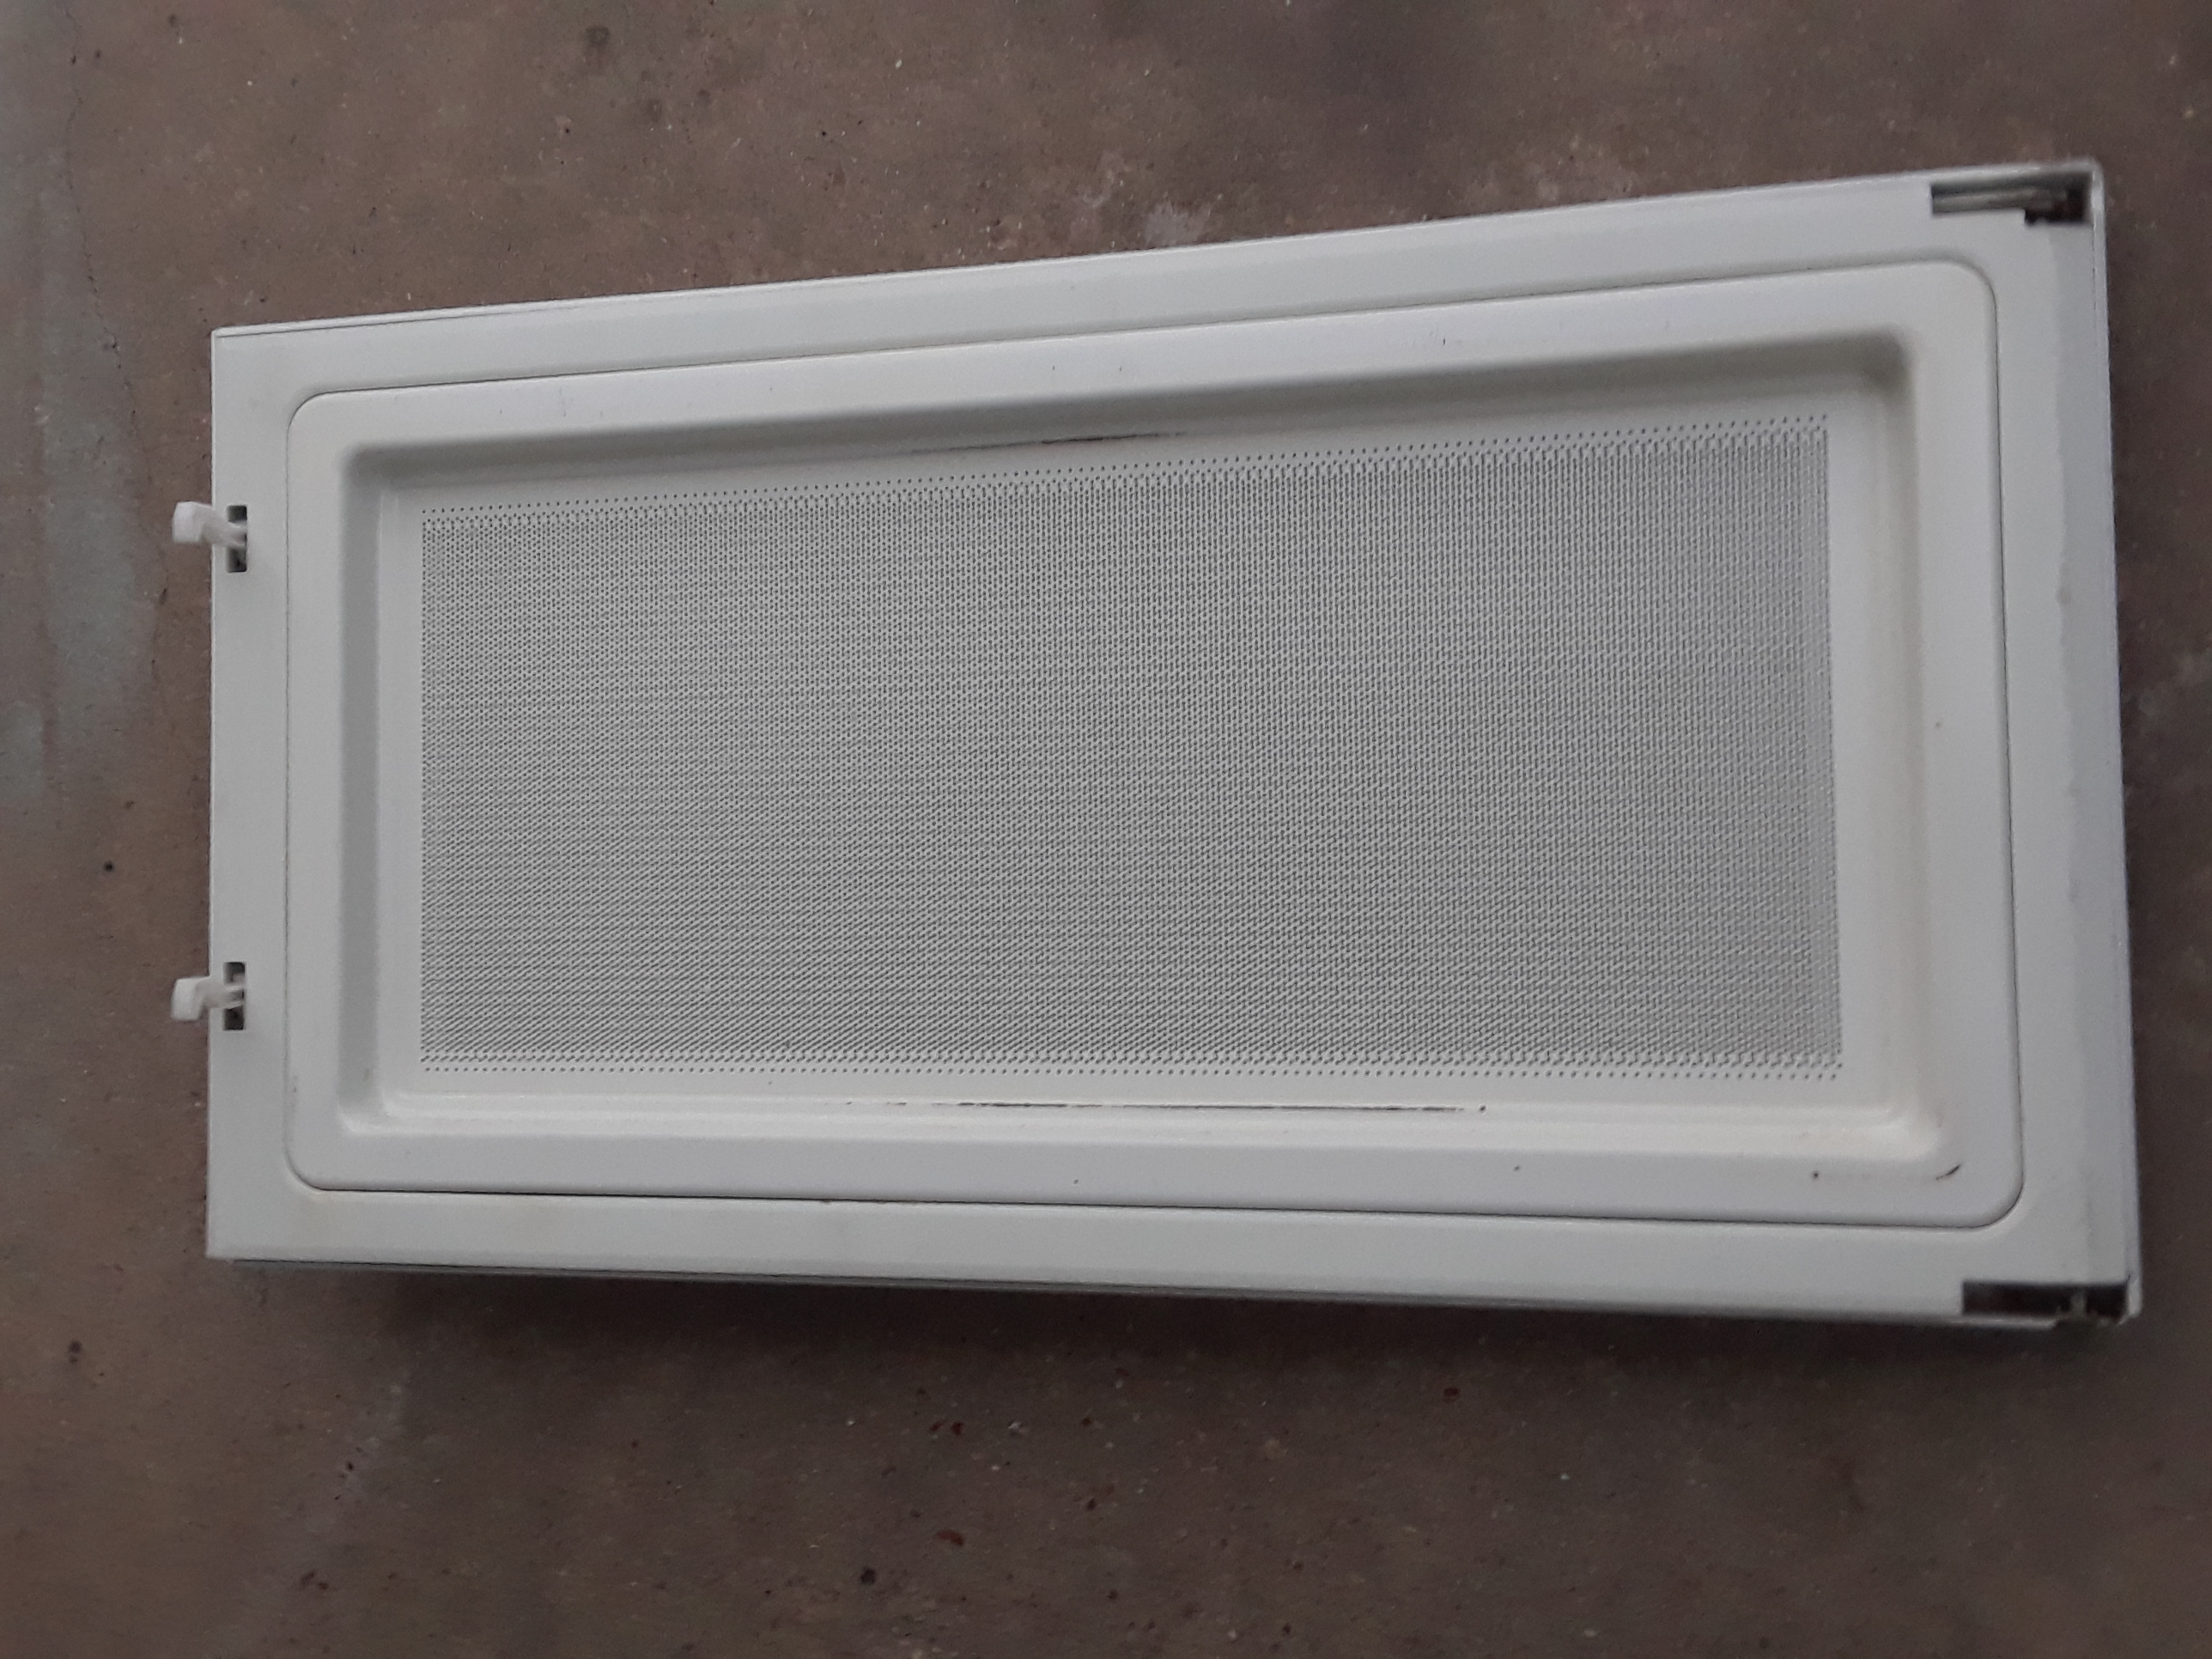 GE JVM1440WH04 Microwave Door Assembly WB56X10270 White